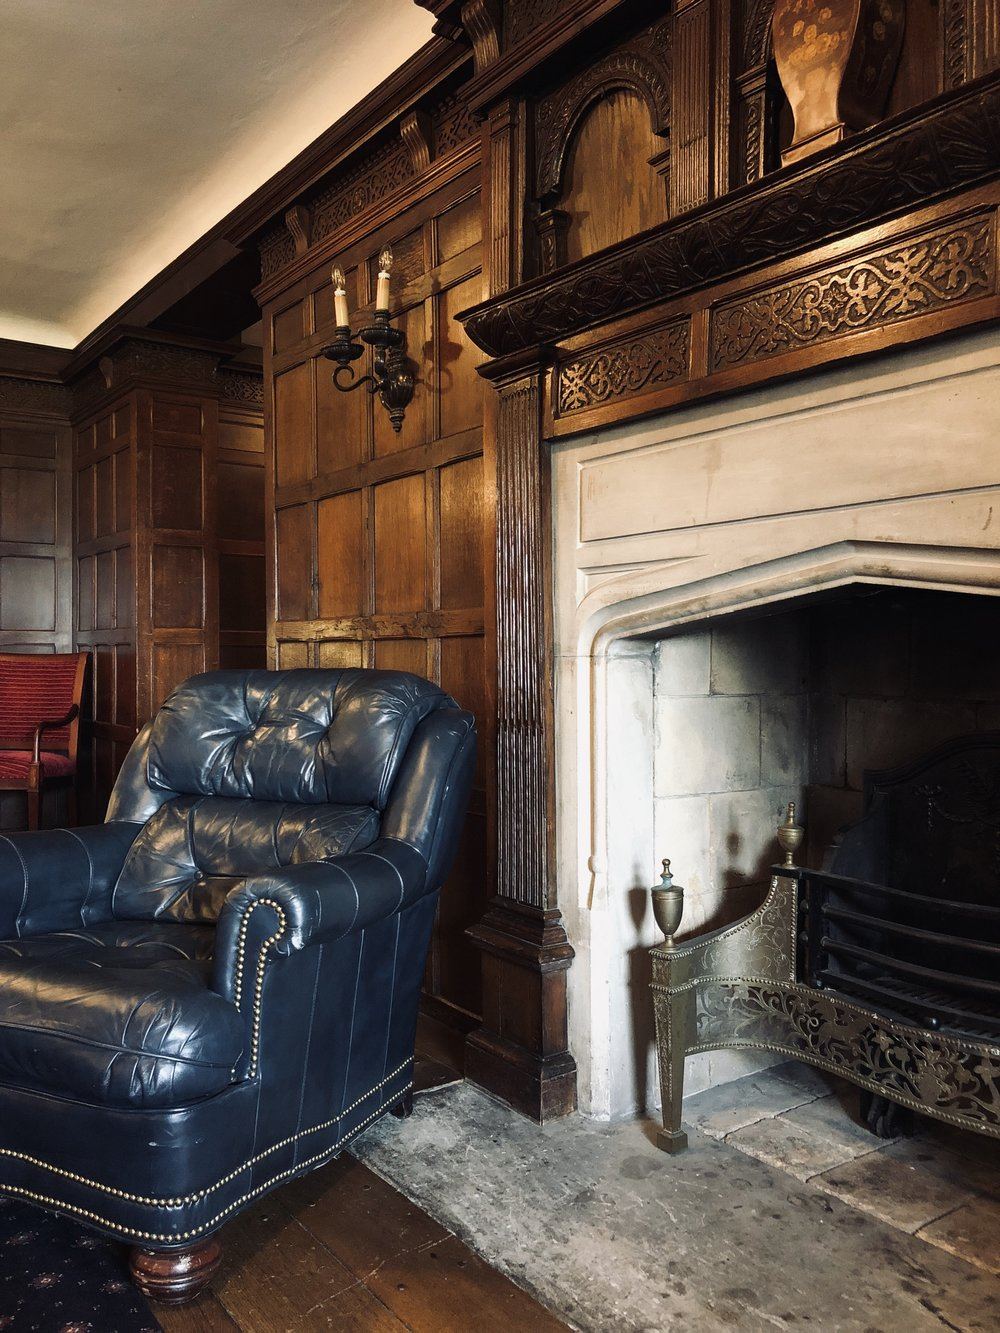 The billiard room in the historic Alger Estate (now called The Veterans Room) is your home for the evening